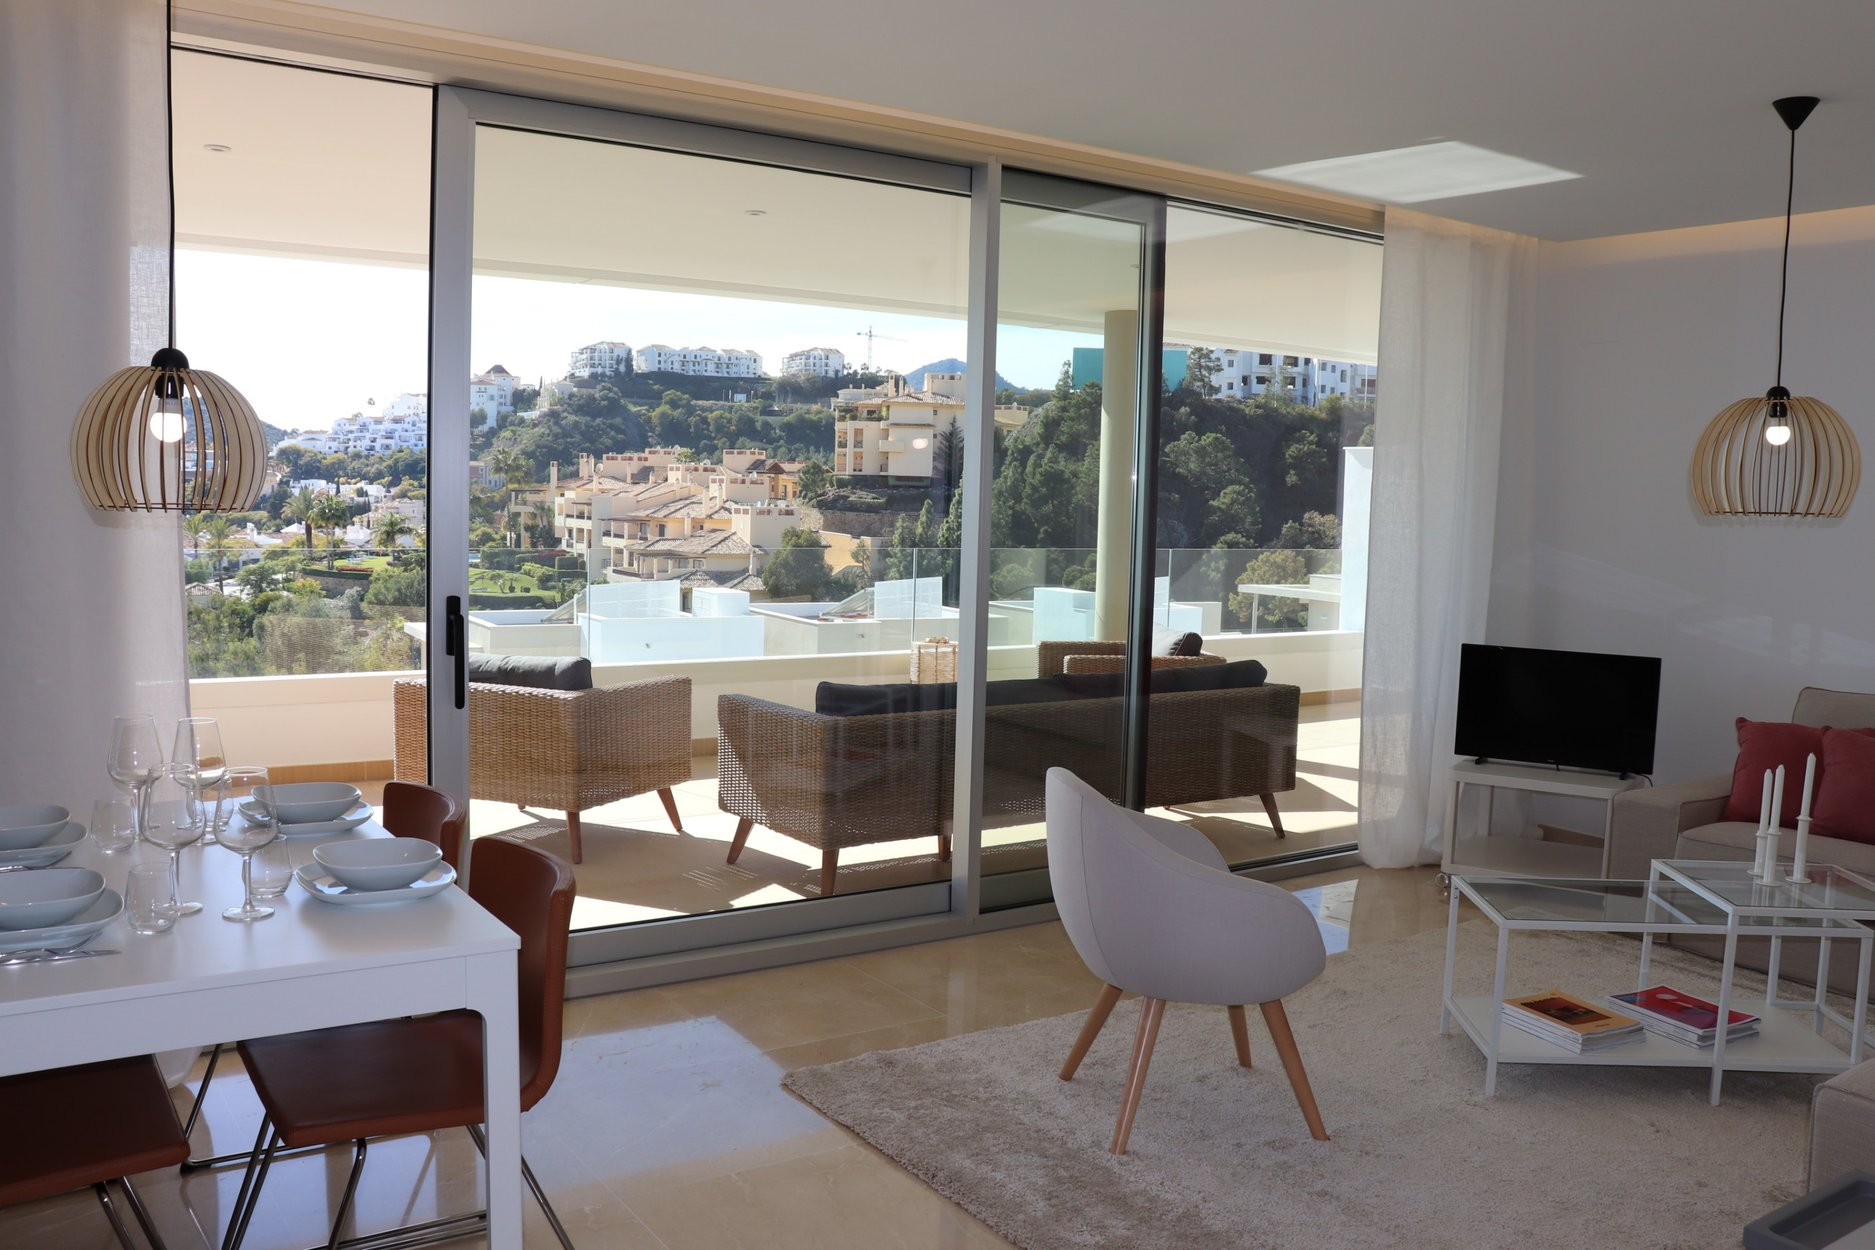 Apartment for sale in La Reserva de Alcucuz